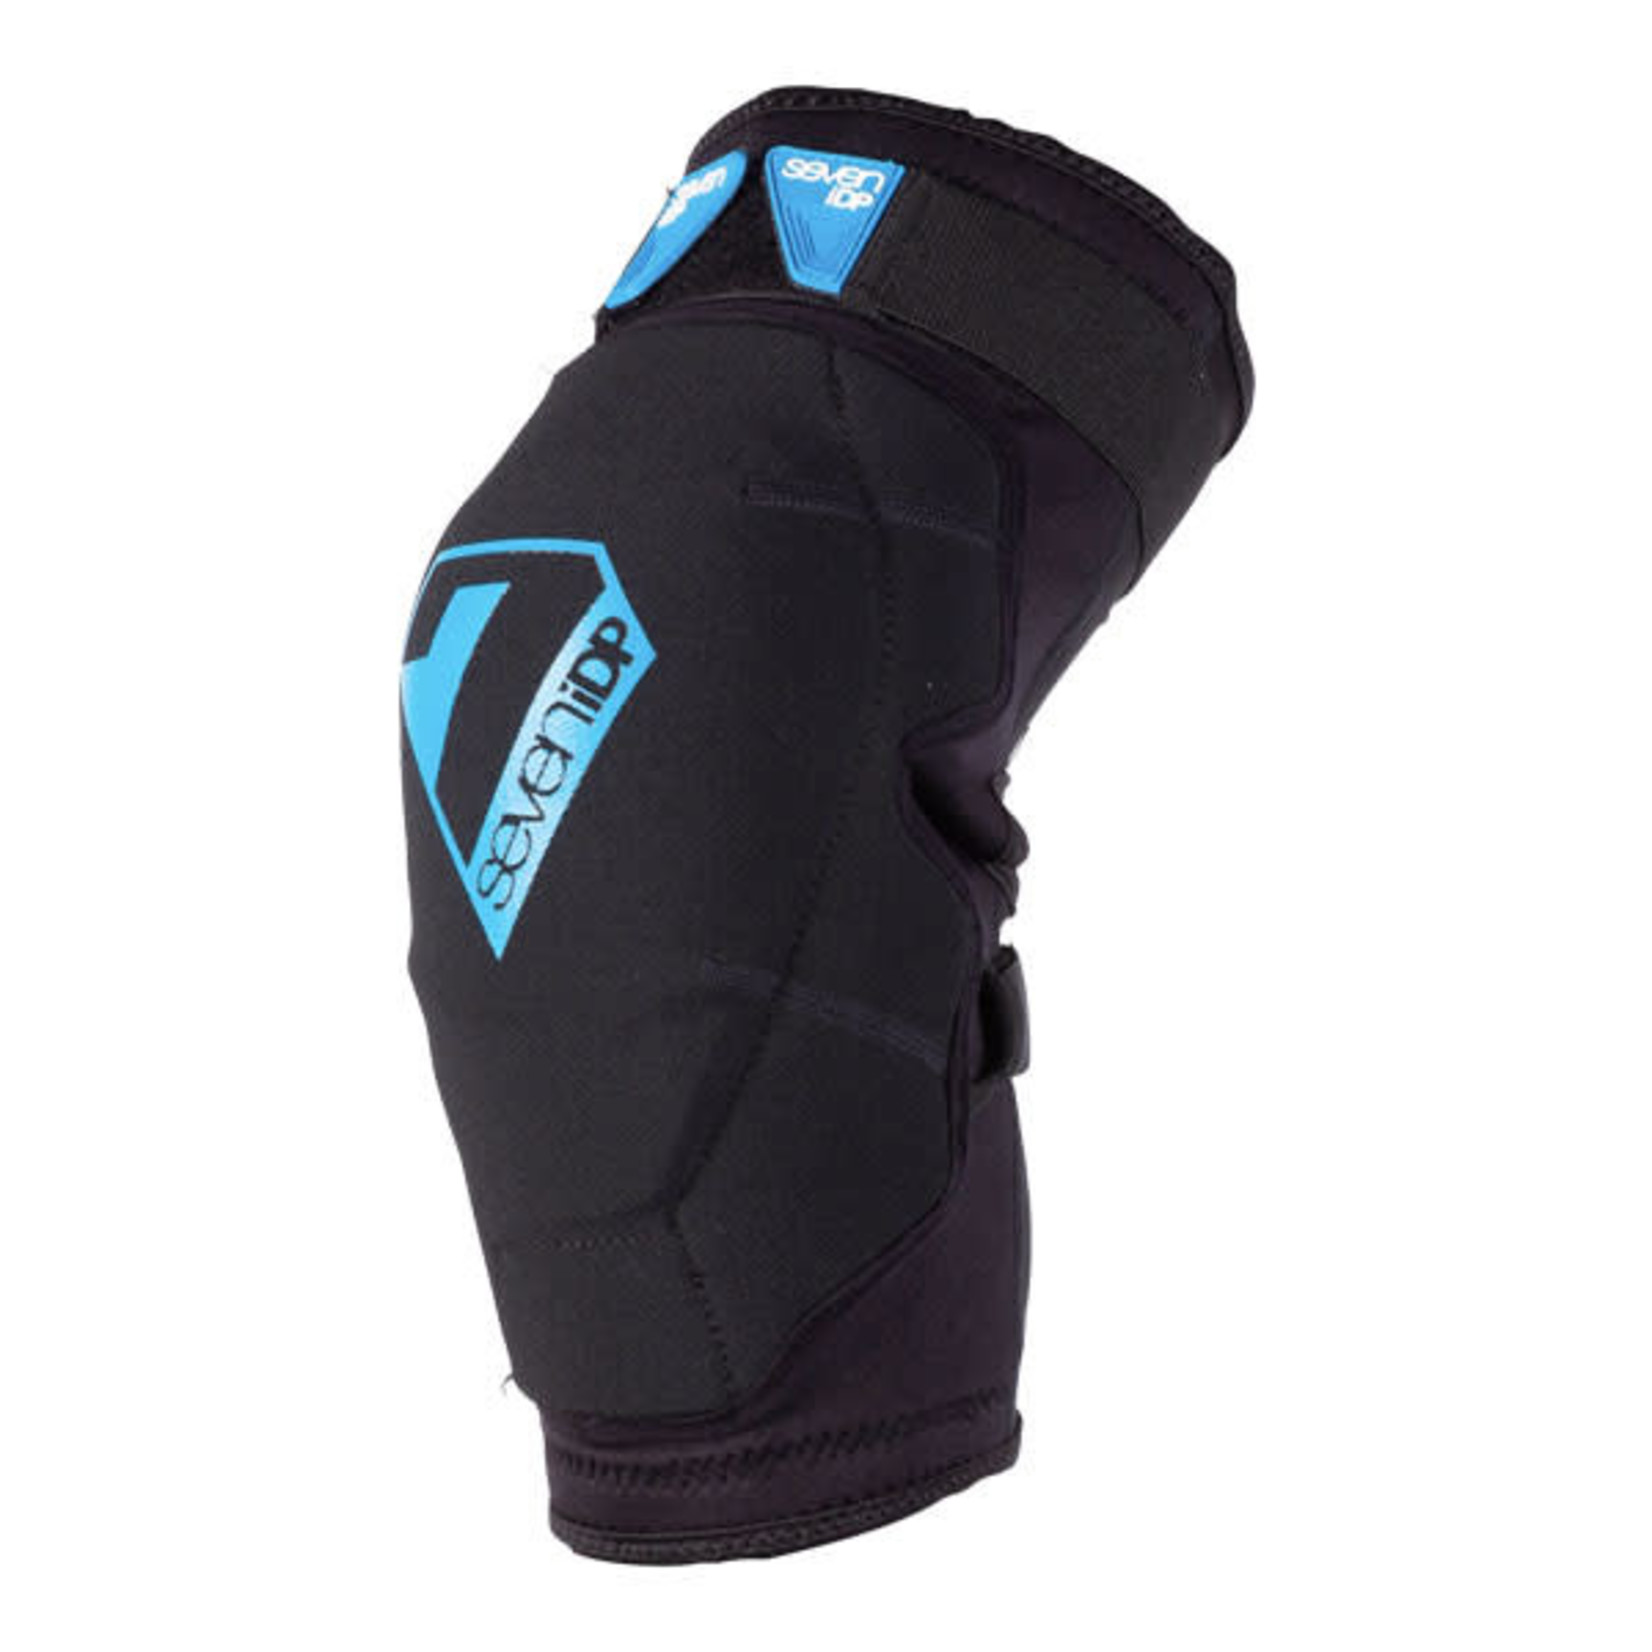 7 Protection 7 Protection - Knee Pad - Flex Knee